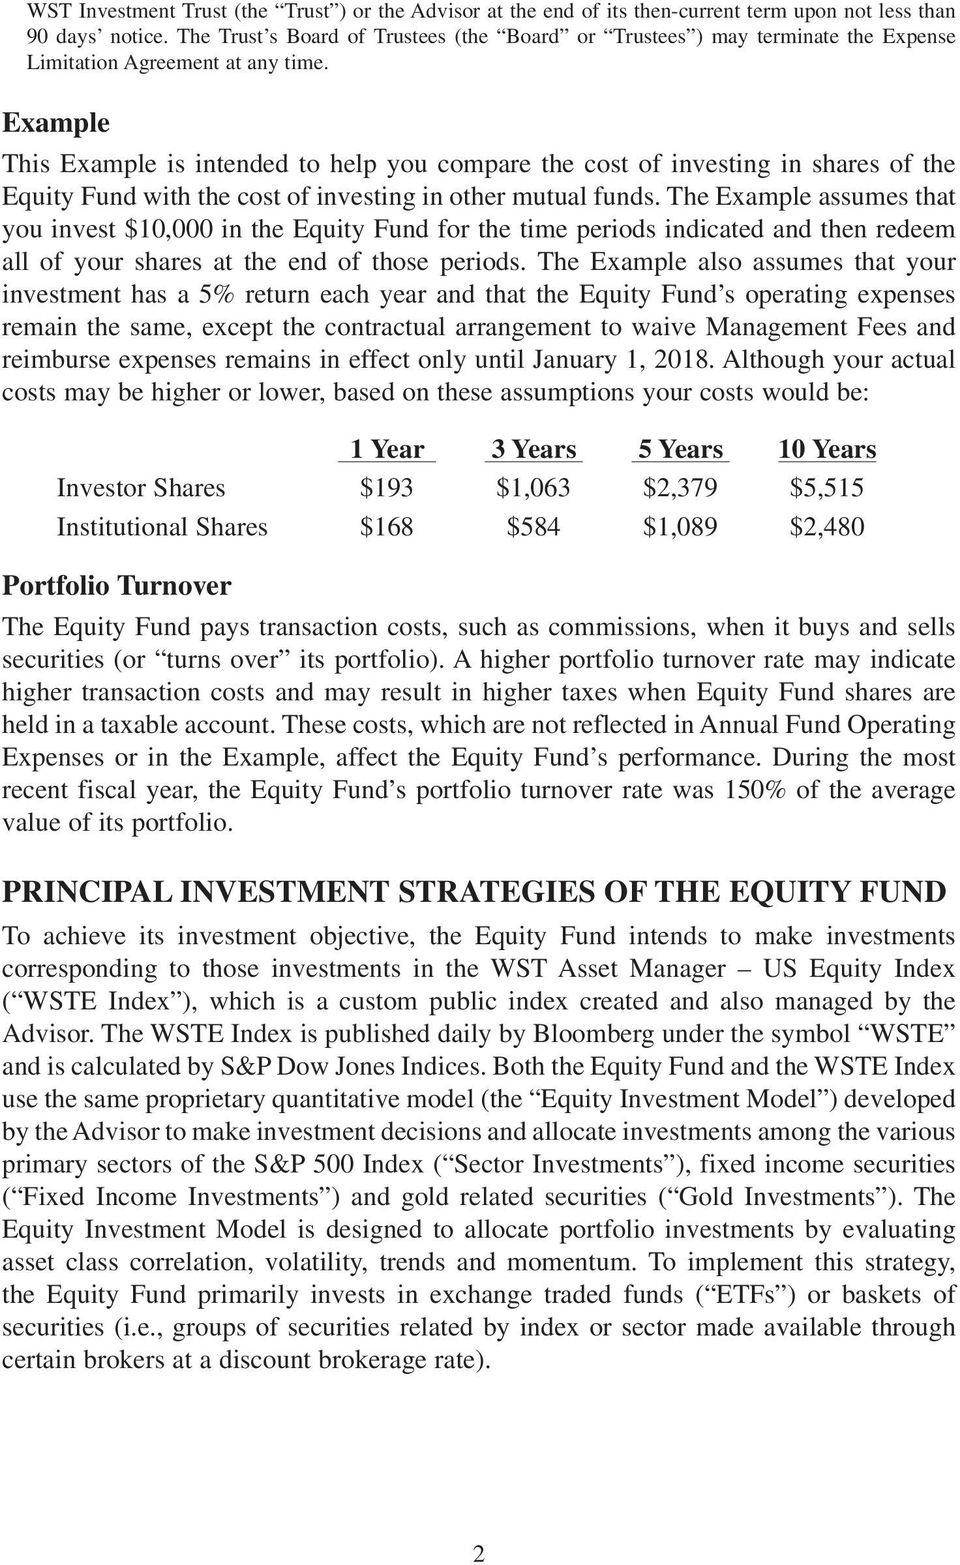 Example This Example is intended to help you compare the cost of investing in shares of the Equity Fund with the cost of investing in other mutual funds.